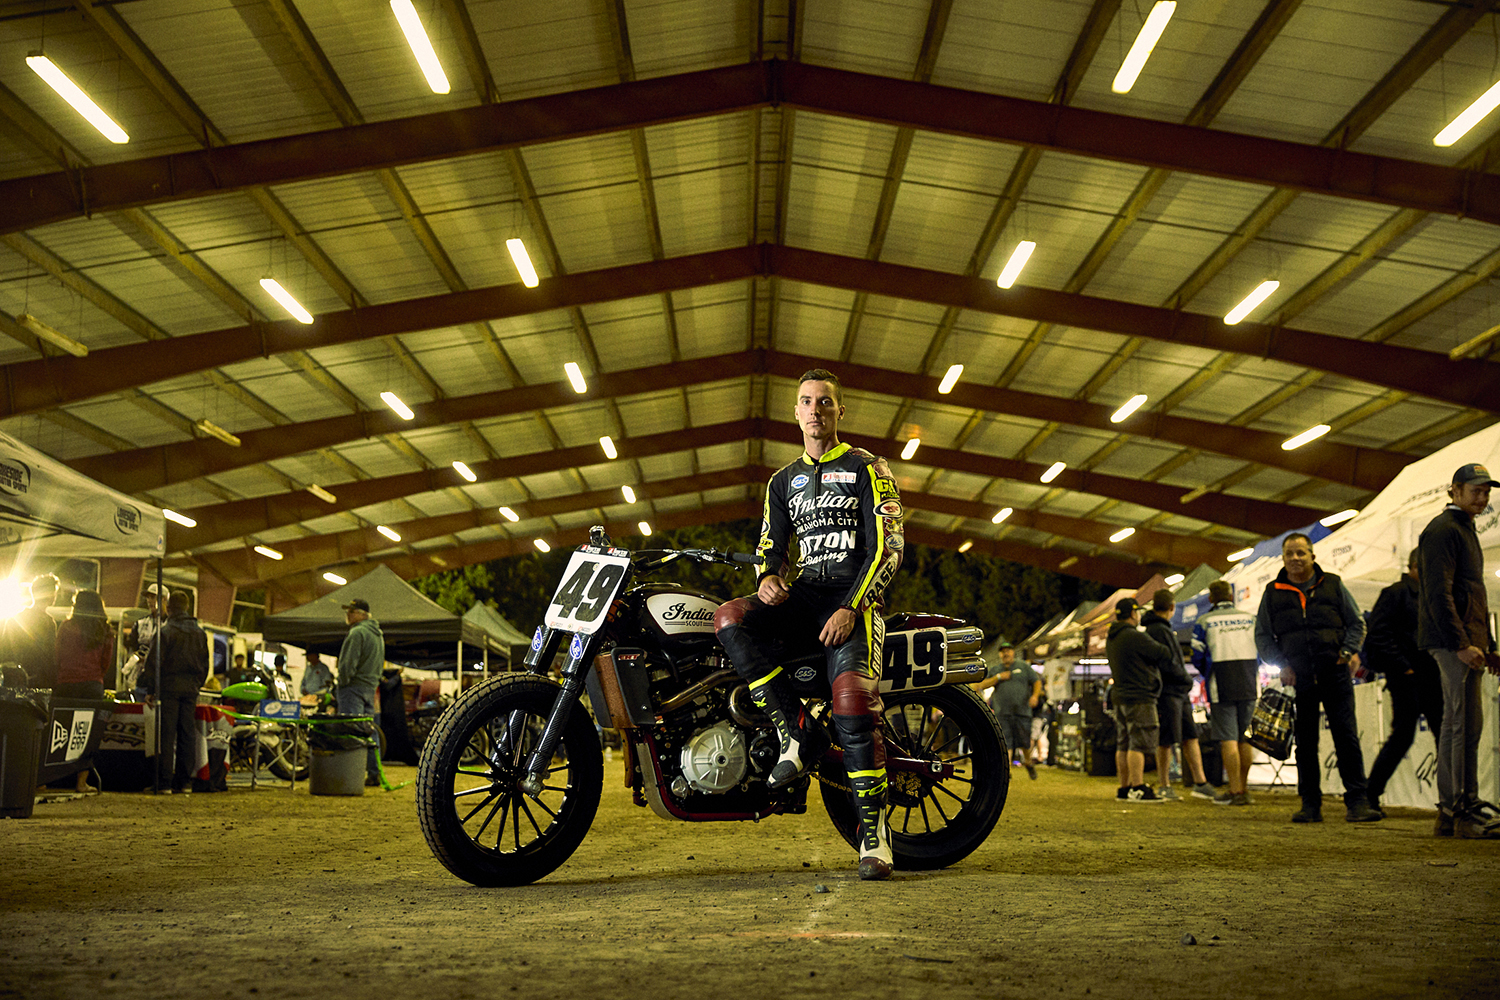 Rob_Williamson_robistall_motorcycles_33.jpg